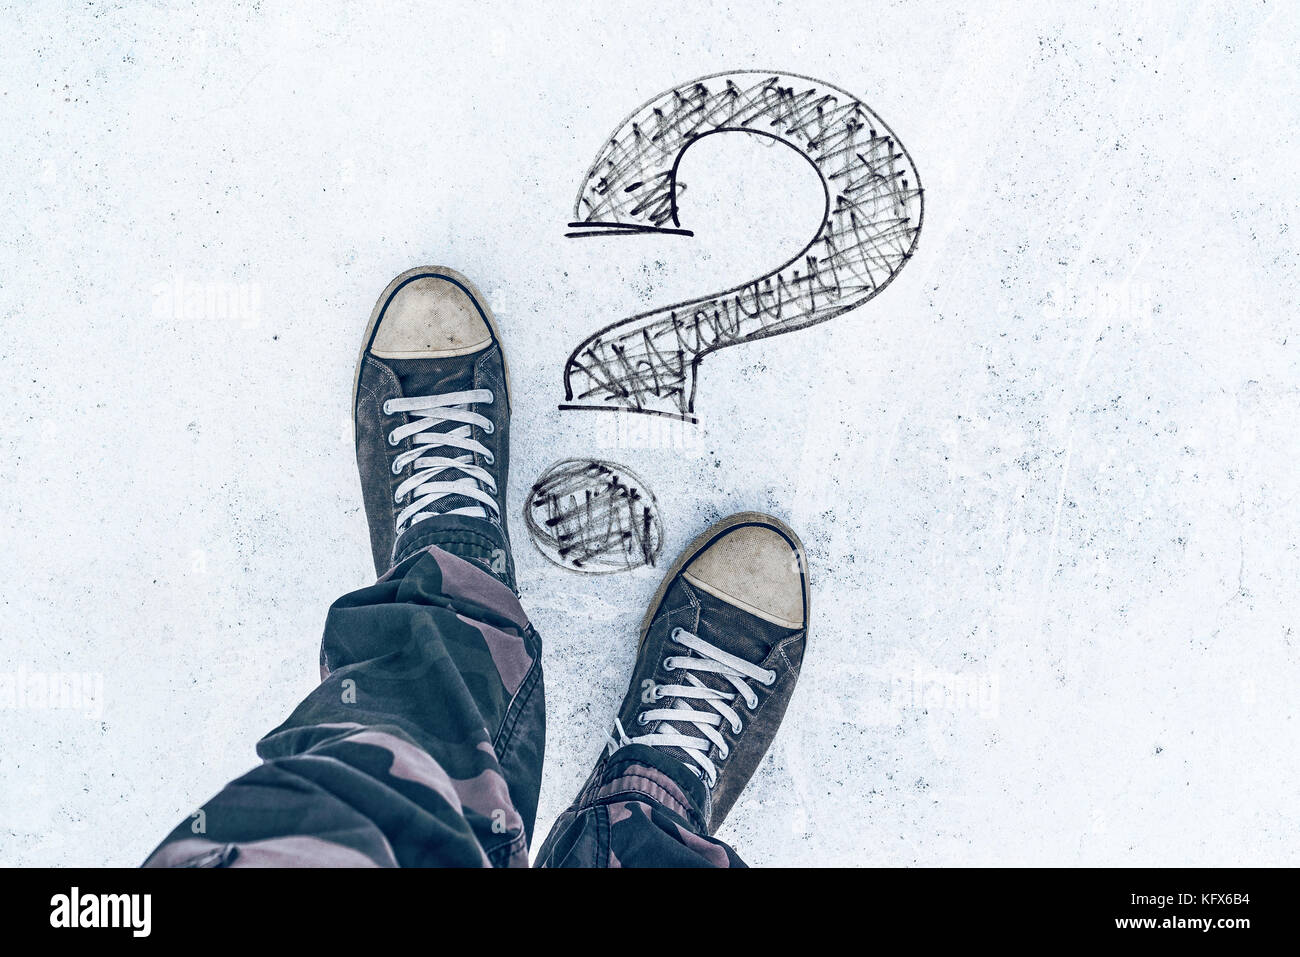 Question mark on the road and sneakers, wondering and asking questions - Stock Image